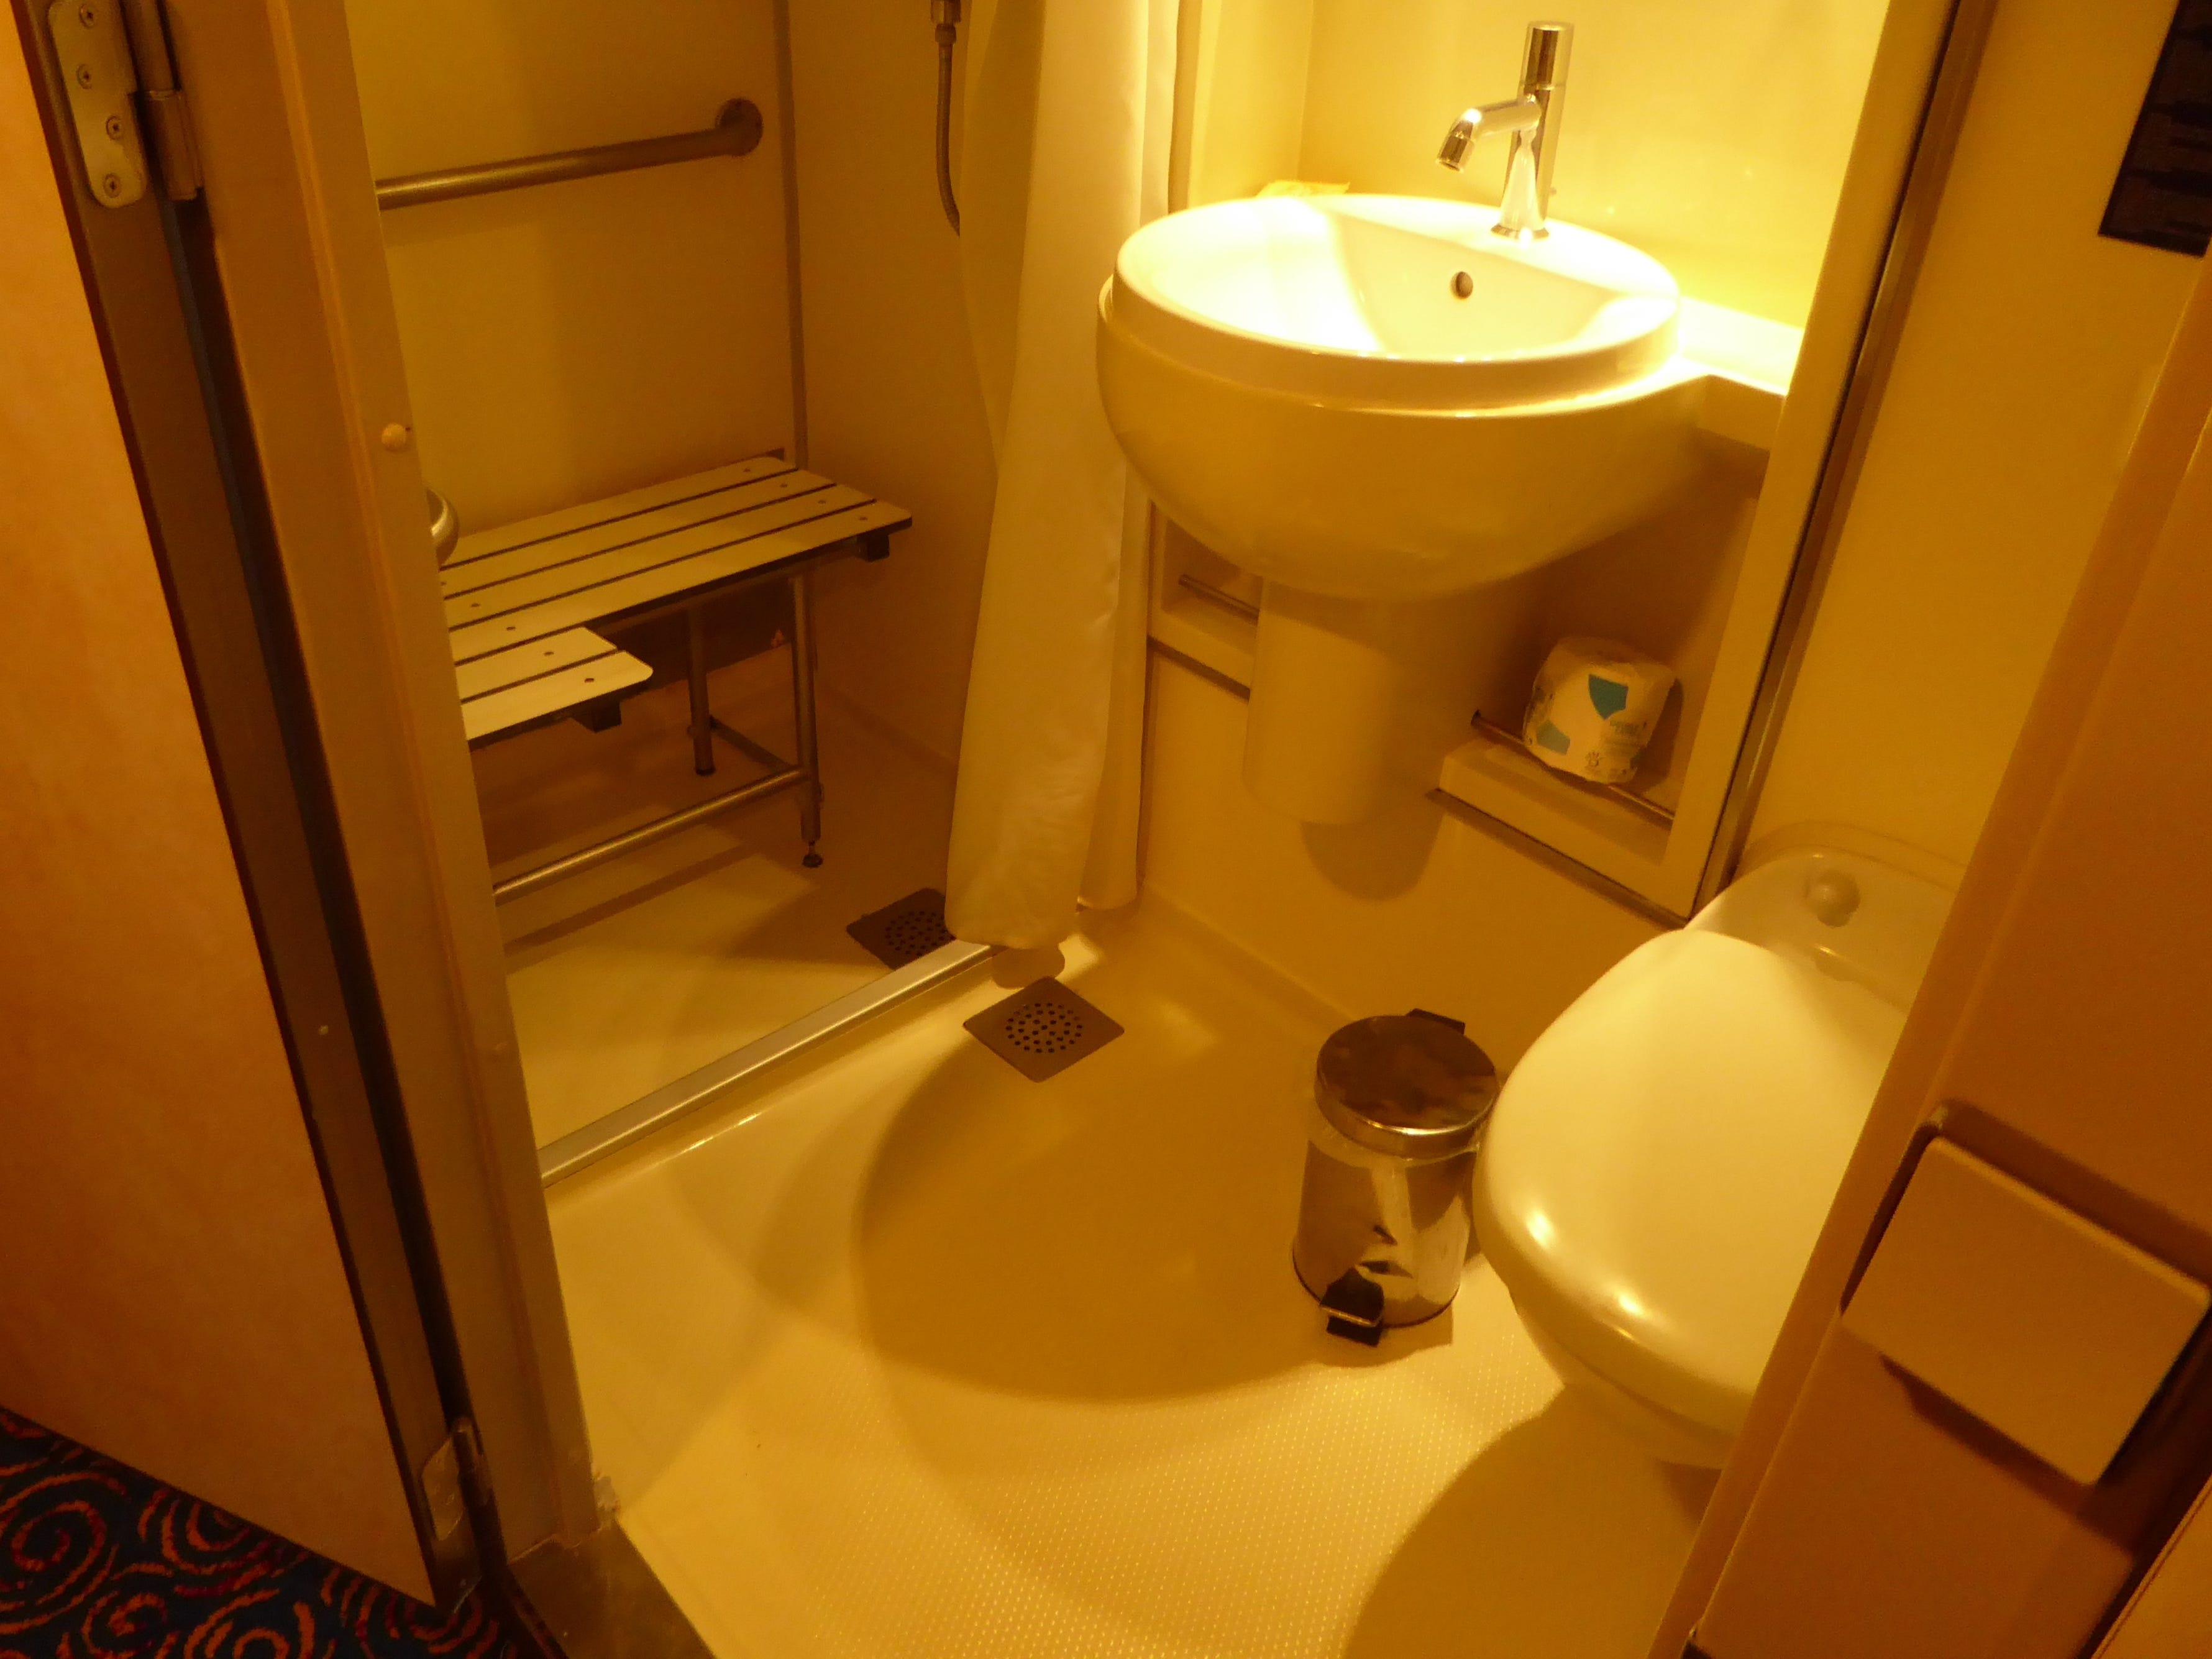 Several staterooms on the Grand Celebration have modified bathrooms with a shower seat to accommodate wheelchair guests.